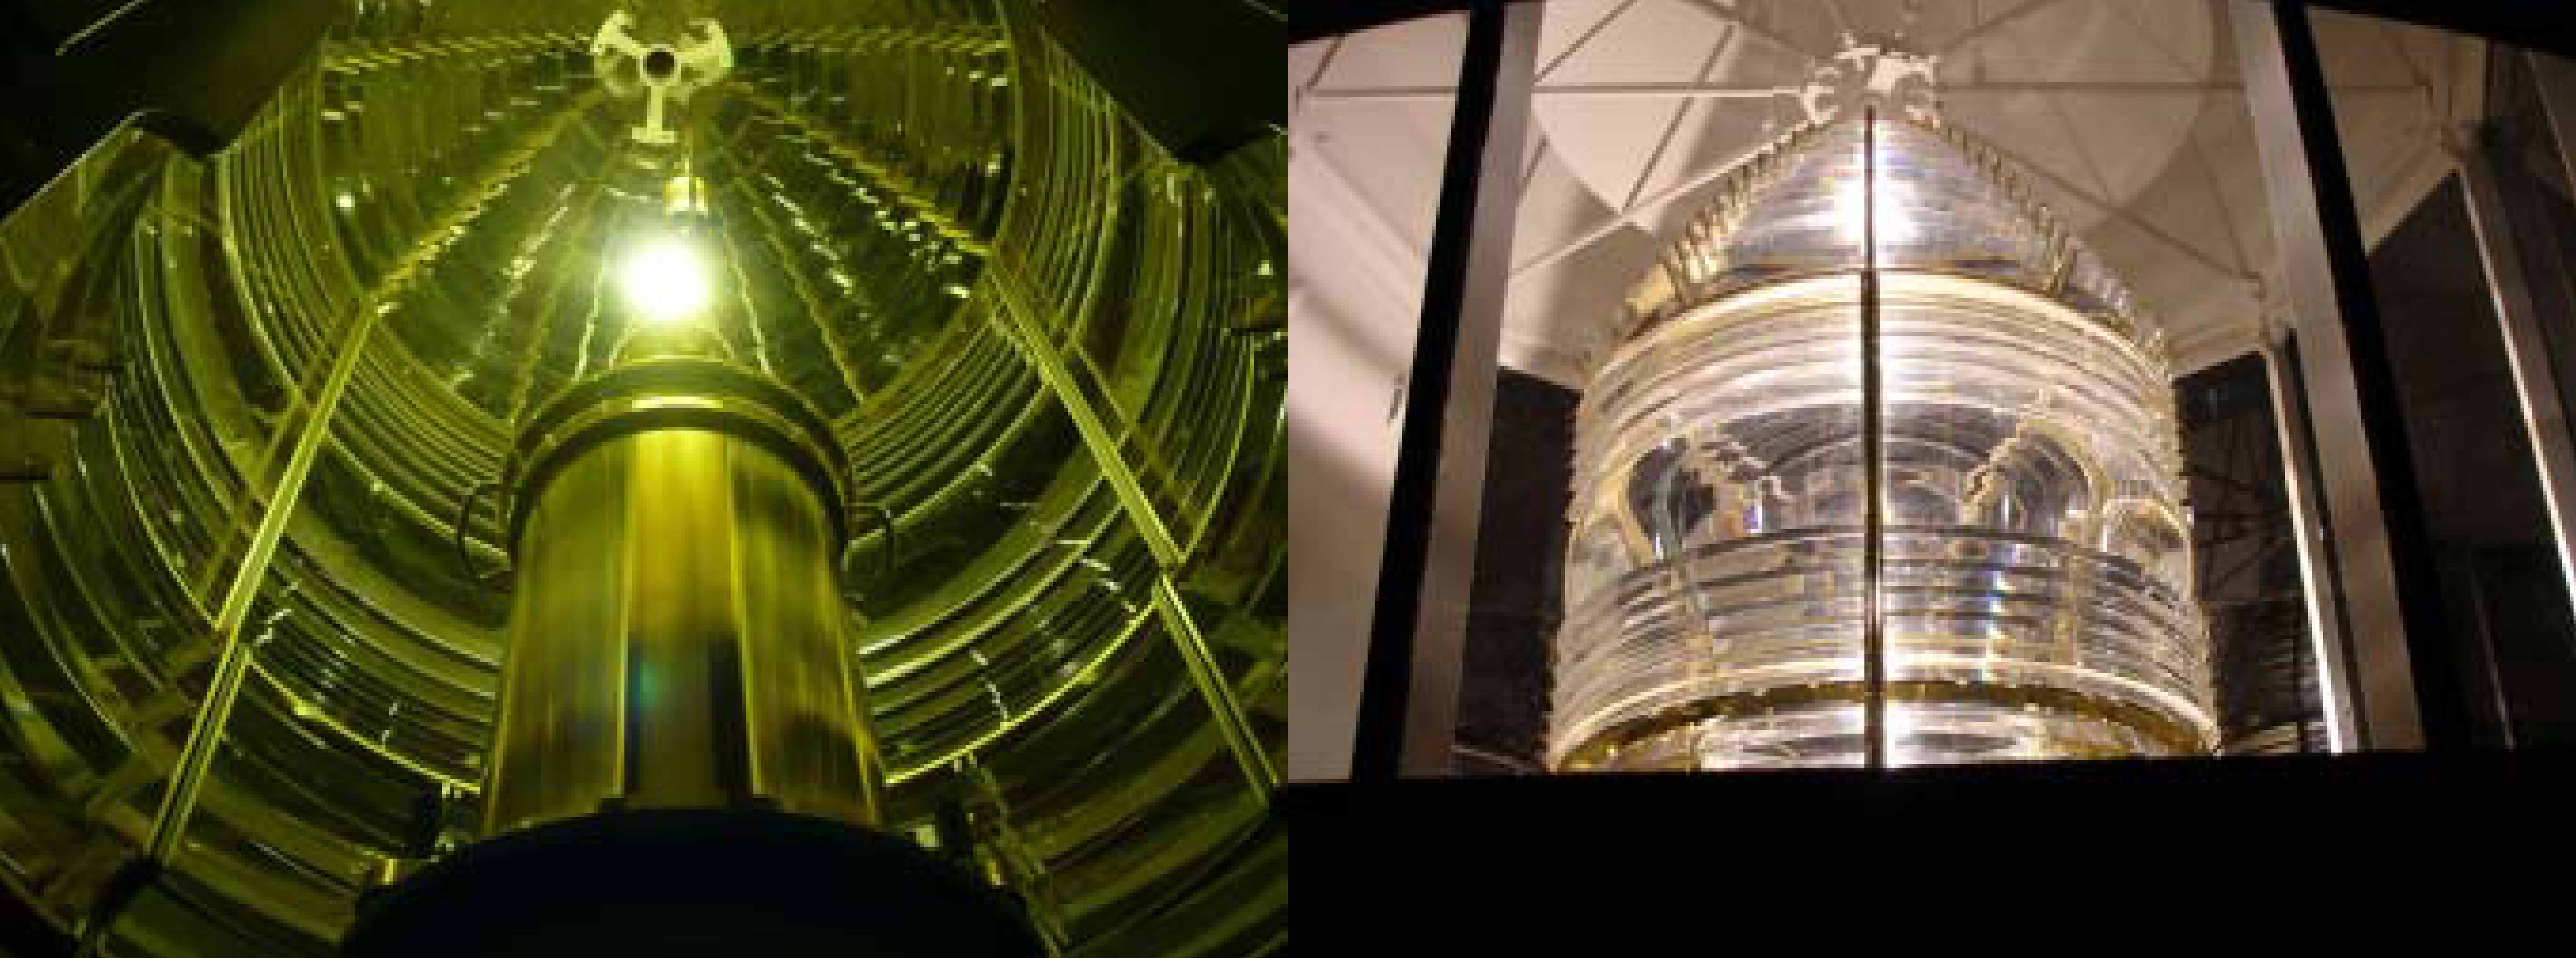 The light shines from the replica fresnel lens.